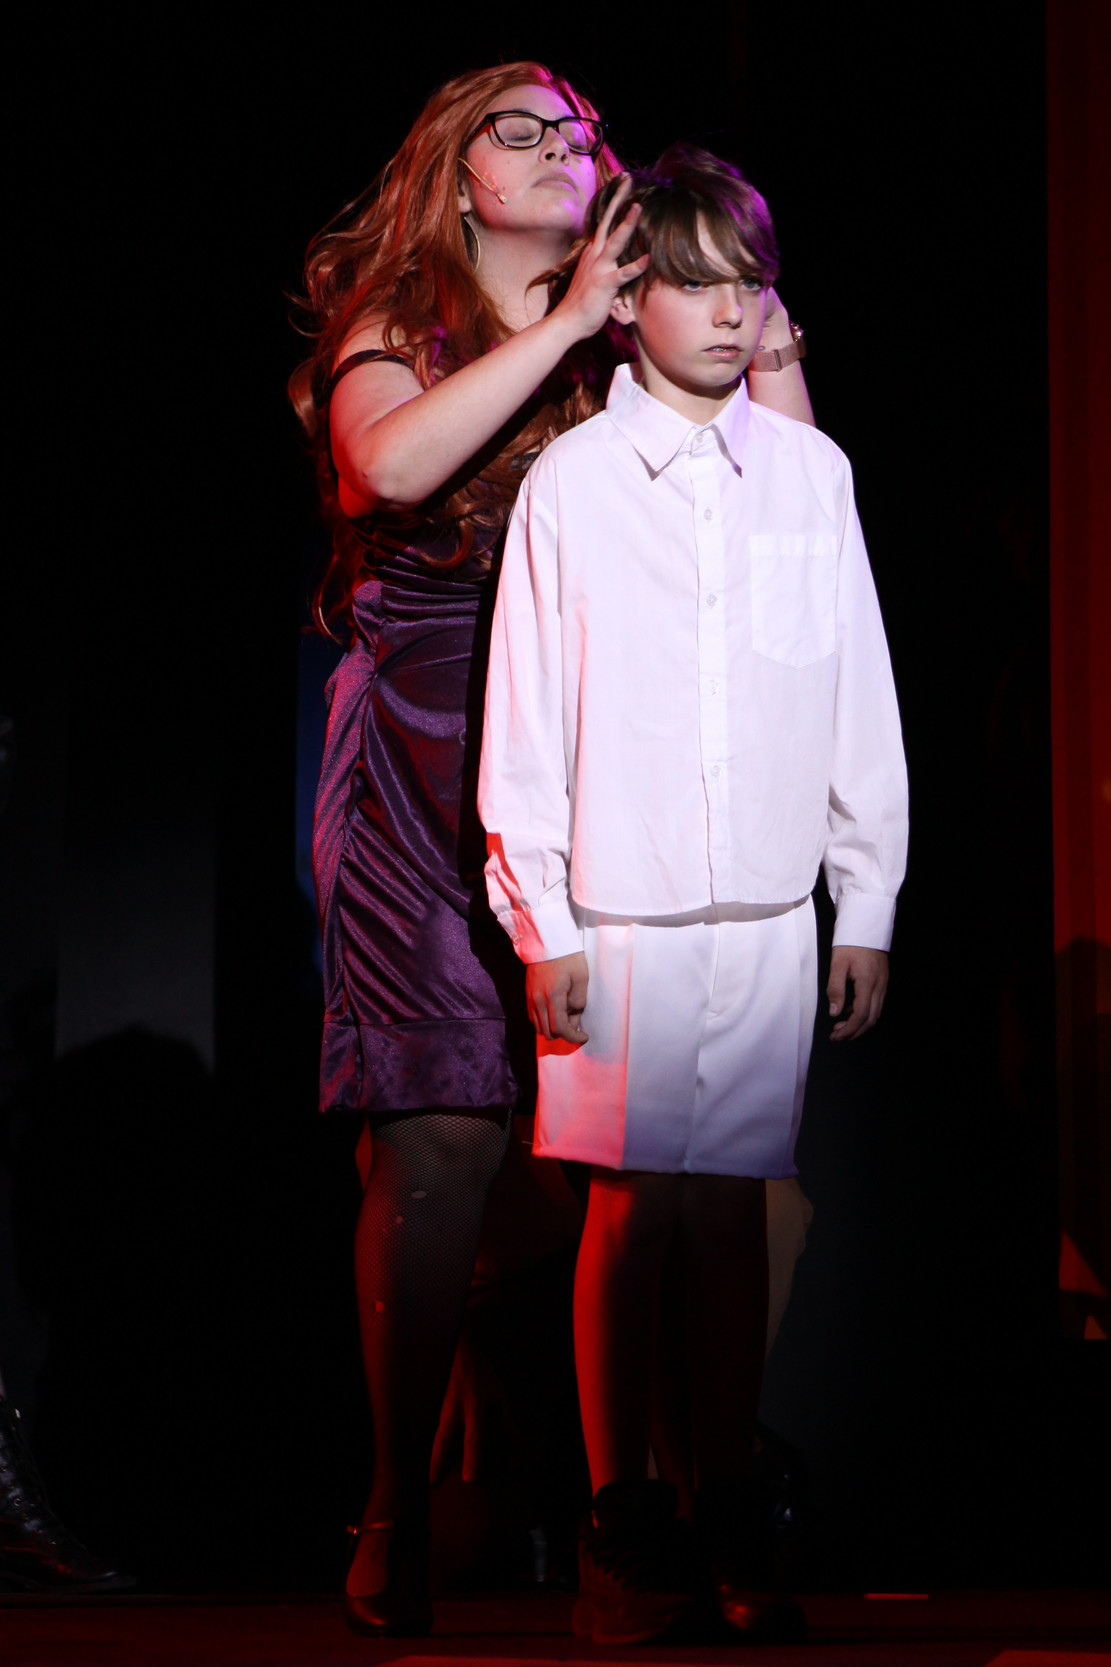 Katie Silva of Warren as The Acid Queen, with Myles Napolitano of Barrington as 10 year old Tommy.